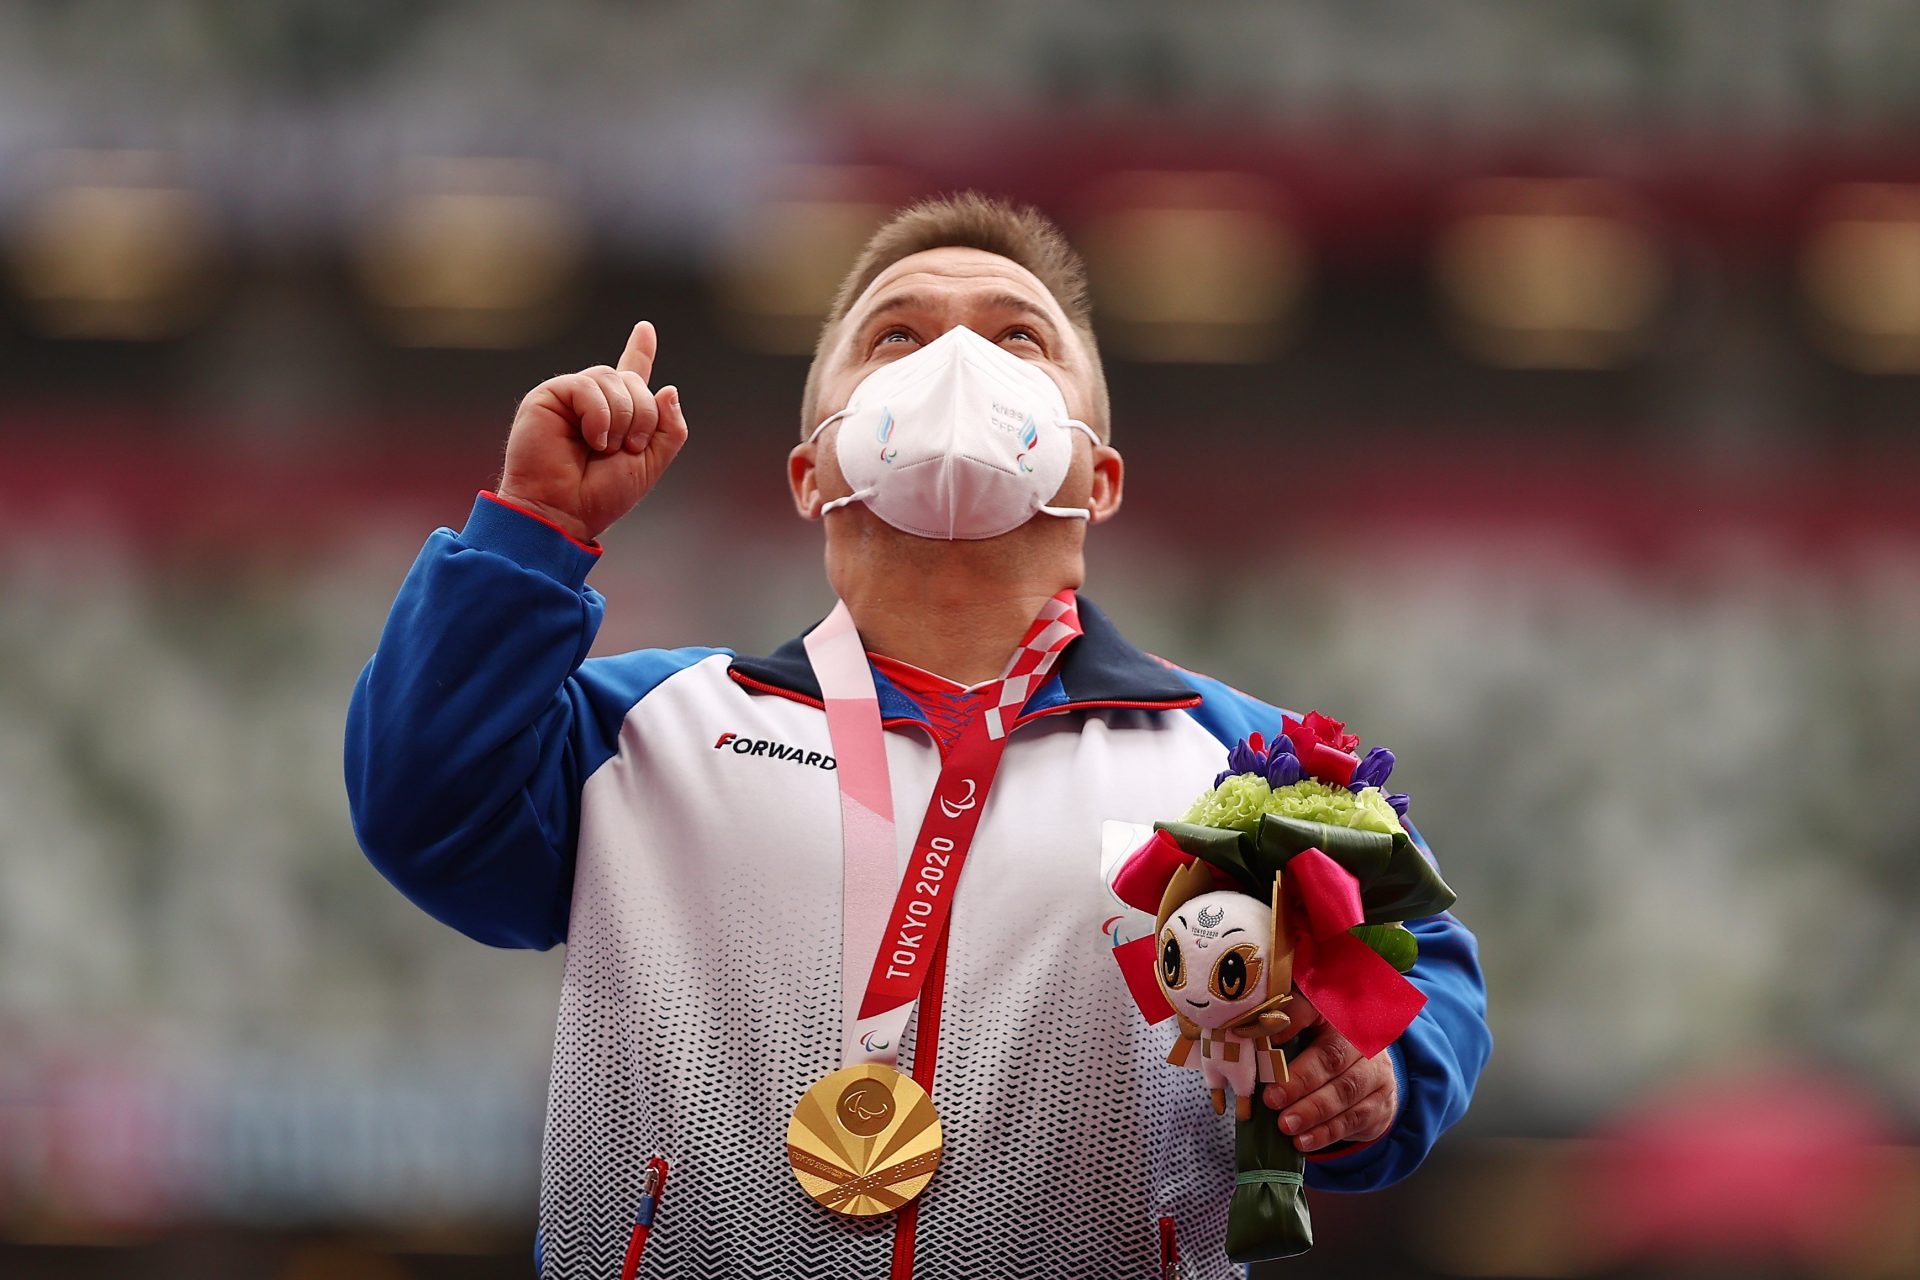 Russia's Denis Gnezdilov celebrates his paralympic shot put gold medal to the strains of Tchaikovsky. Credit: Lintao Zhang/Getty; Fine Arts/Heritage Pictures via Getty